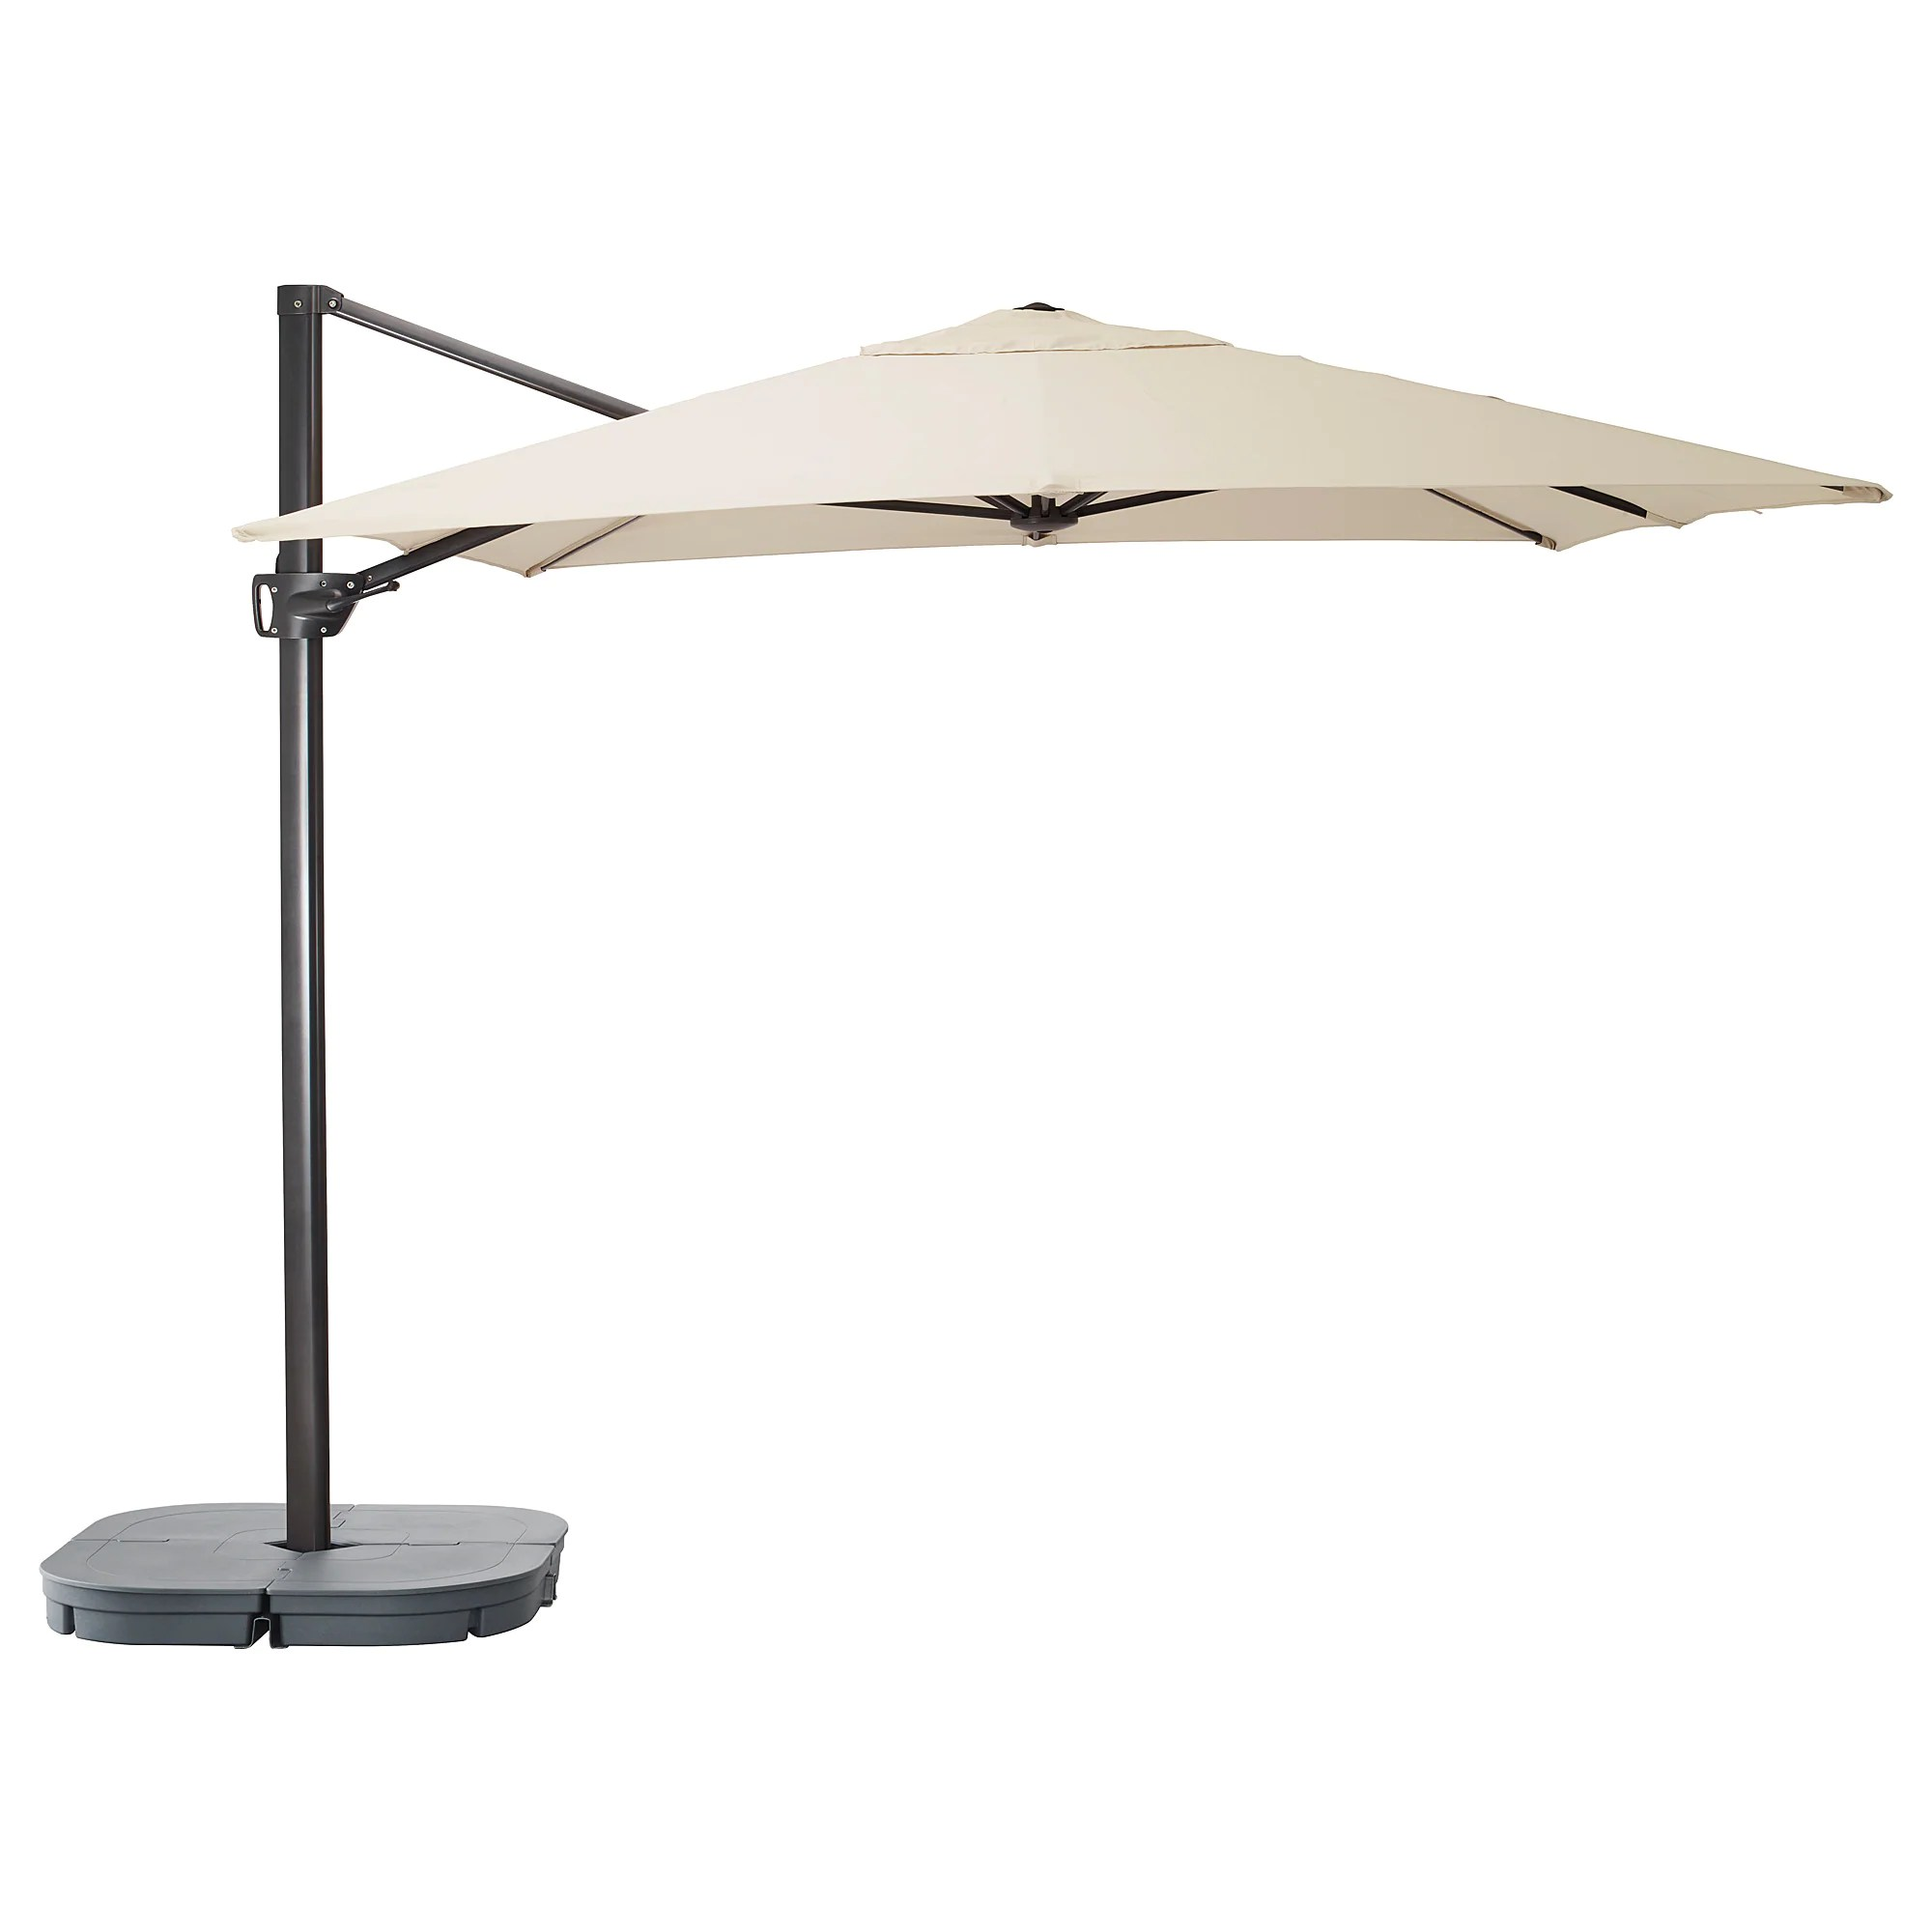 Parasol 350 Cm Parasol Hanging With Base SeglarÖ SvartÖ Tilting Beige Dark Grey